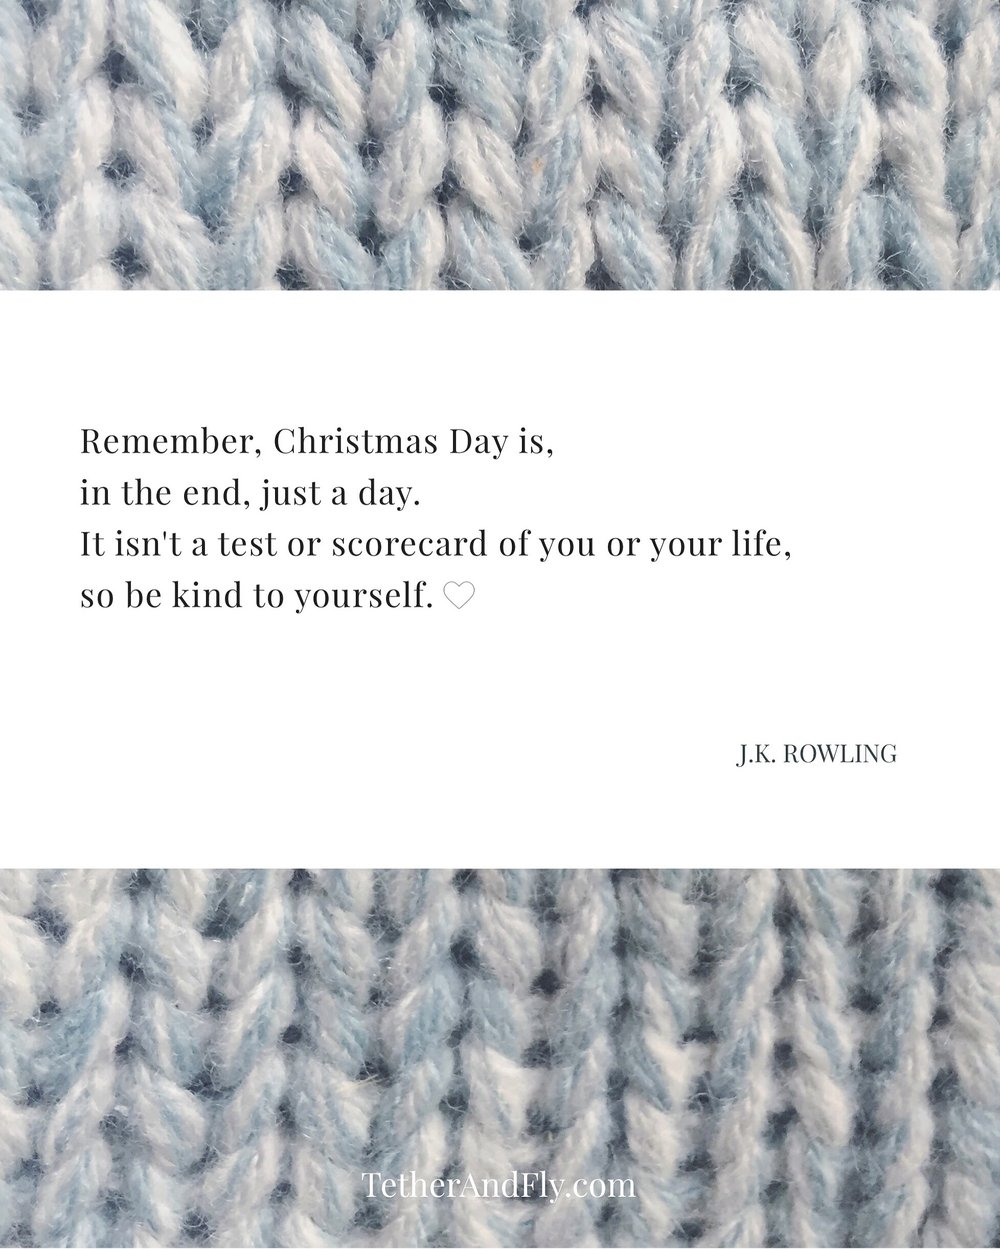 TetherAndFly.com | Remember, Christmas Day is, in the end, just a day. It isn't a test or a scorecard of you or your life, so be kind to yourself. JK Rowling